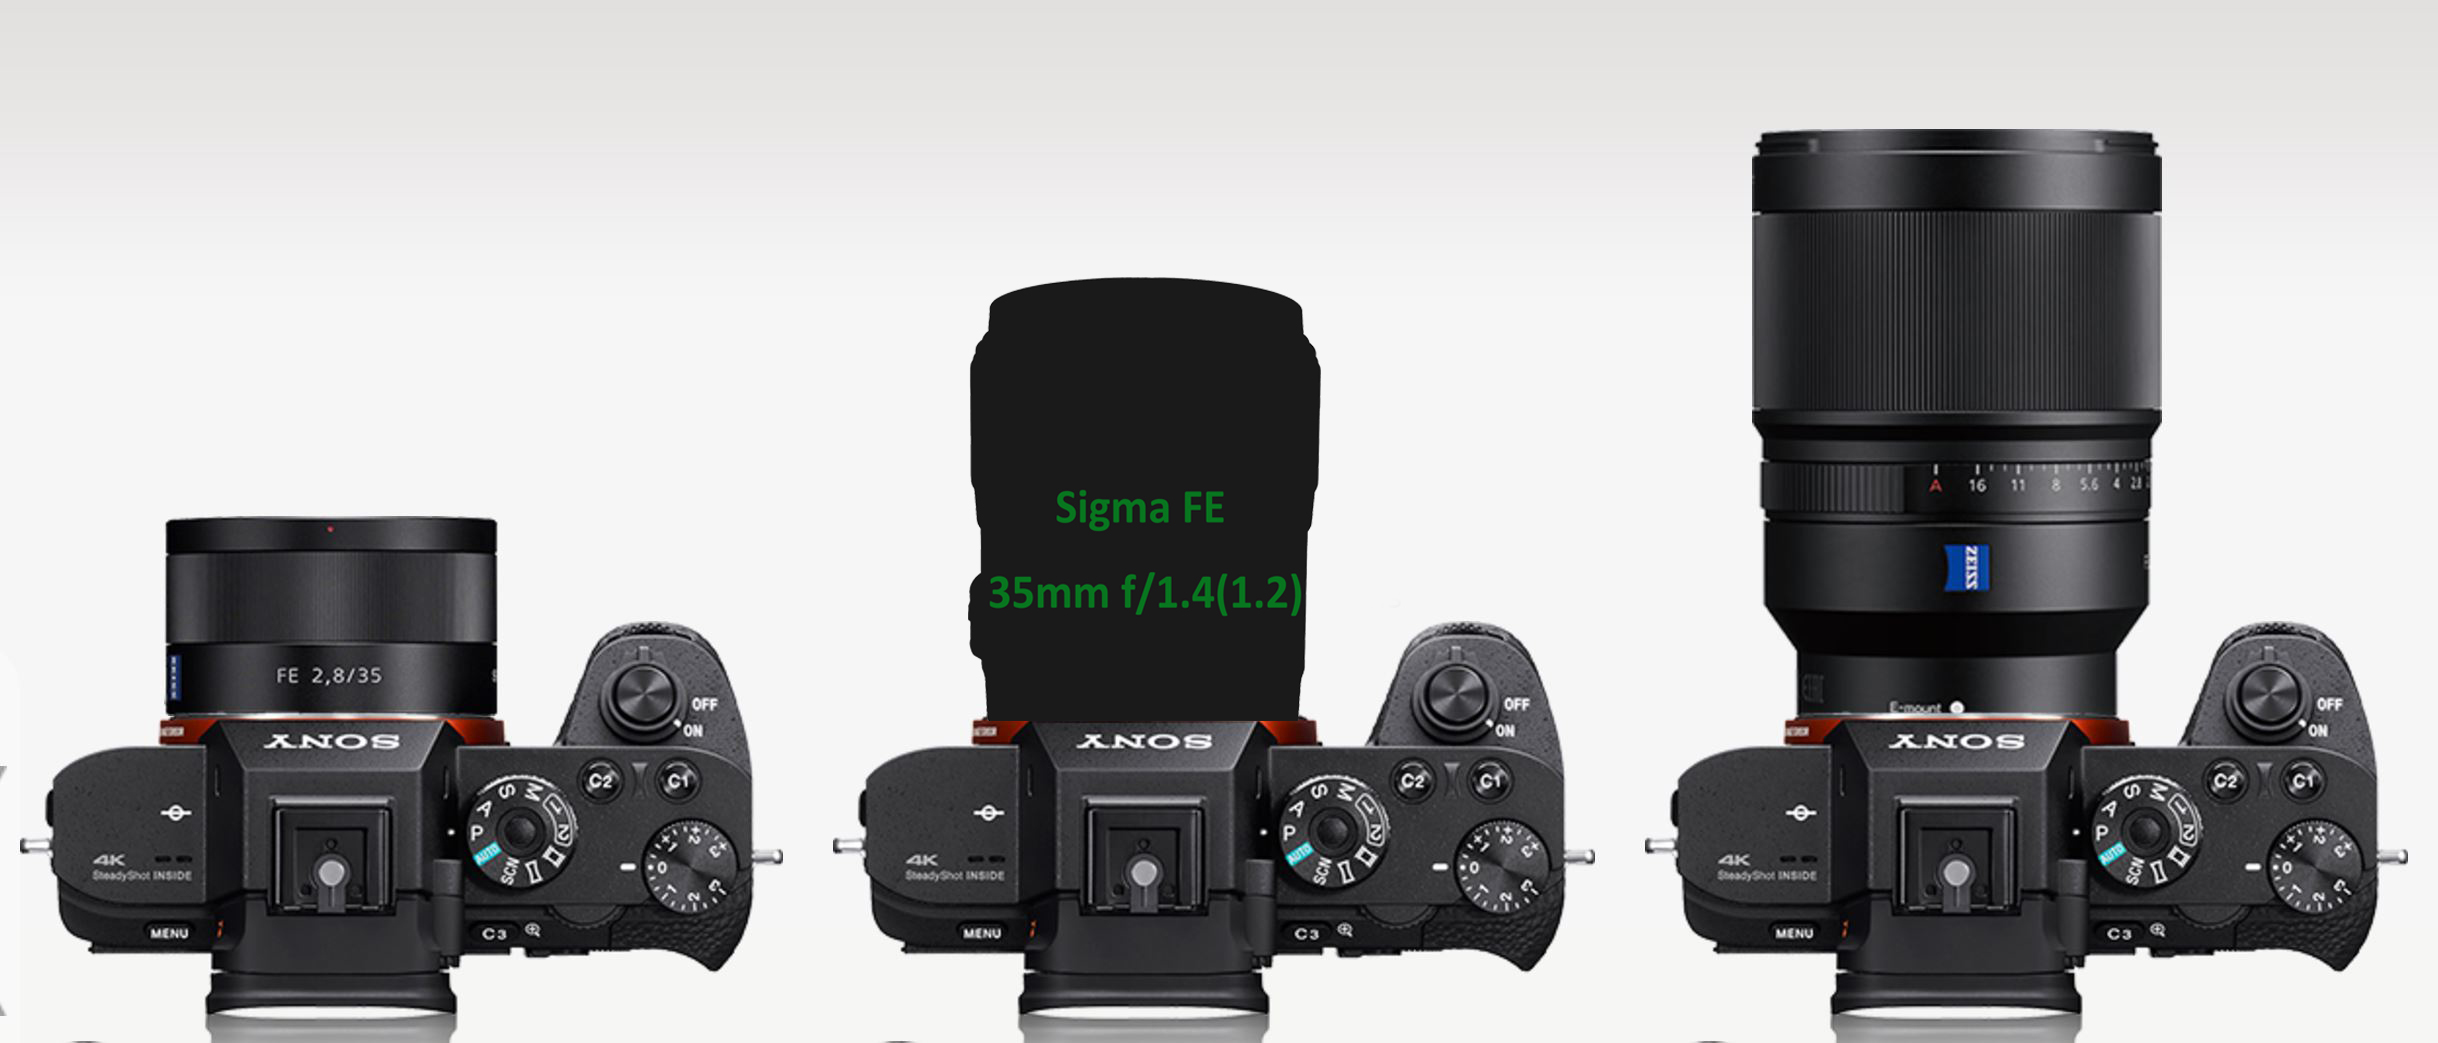 Rumors: First Sigma FE Lens will be Sigma FE 35mm f/1.4 (or 1.2) AF ...